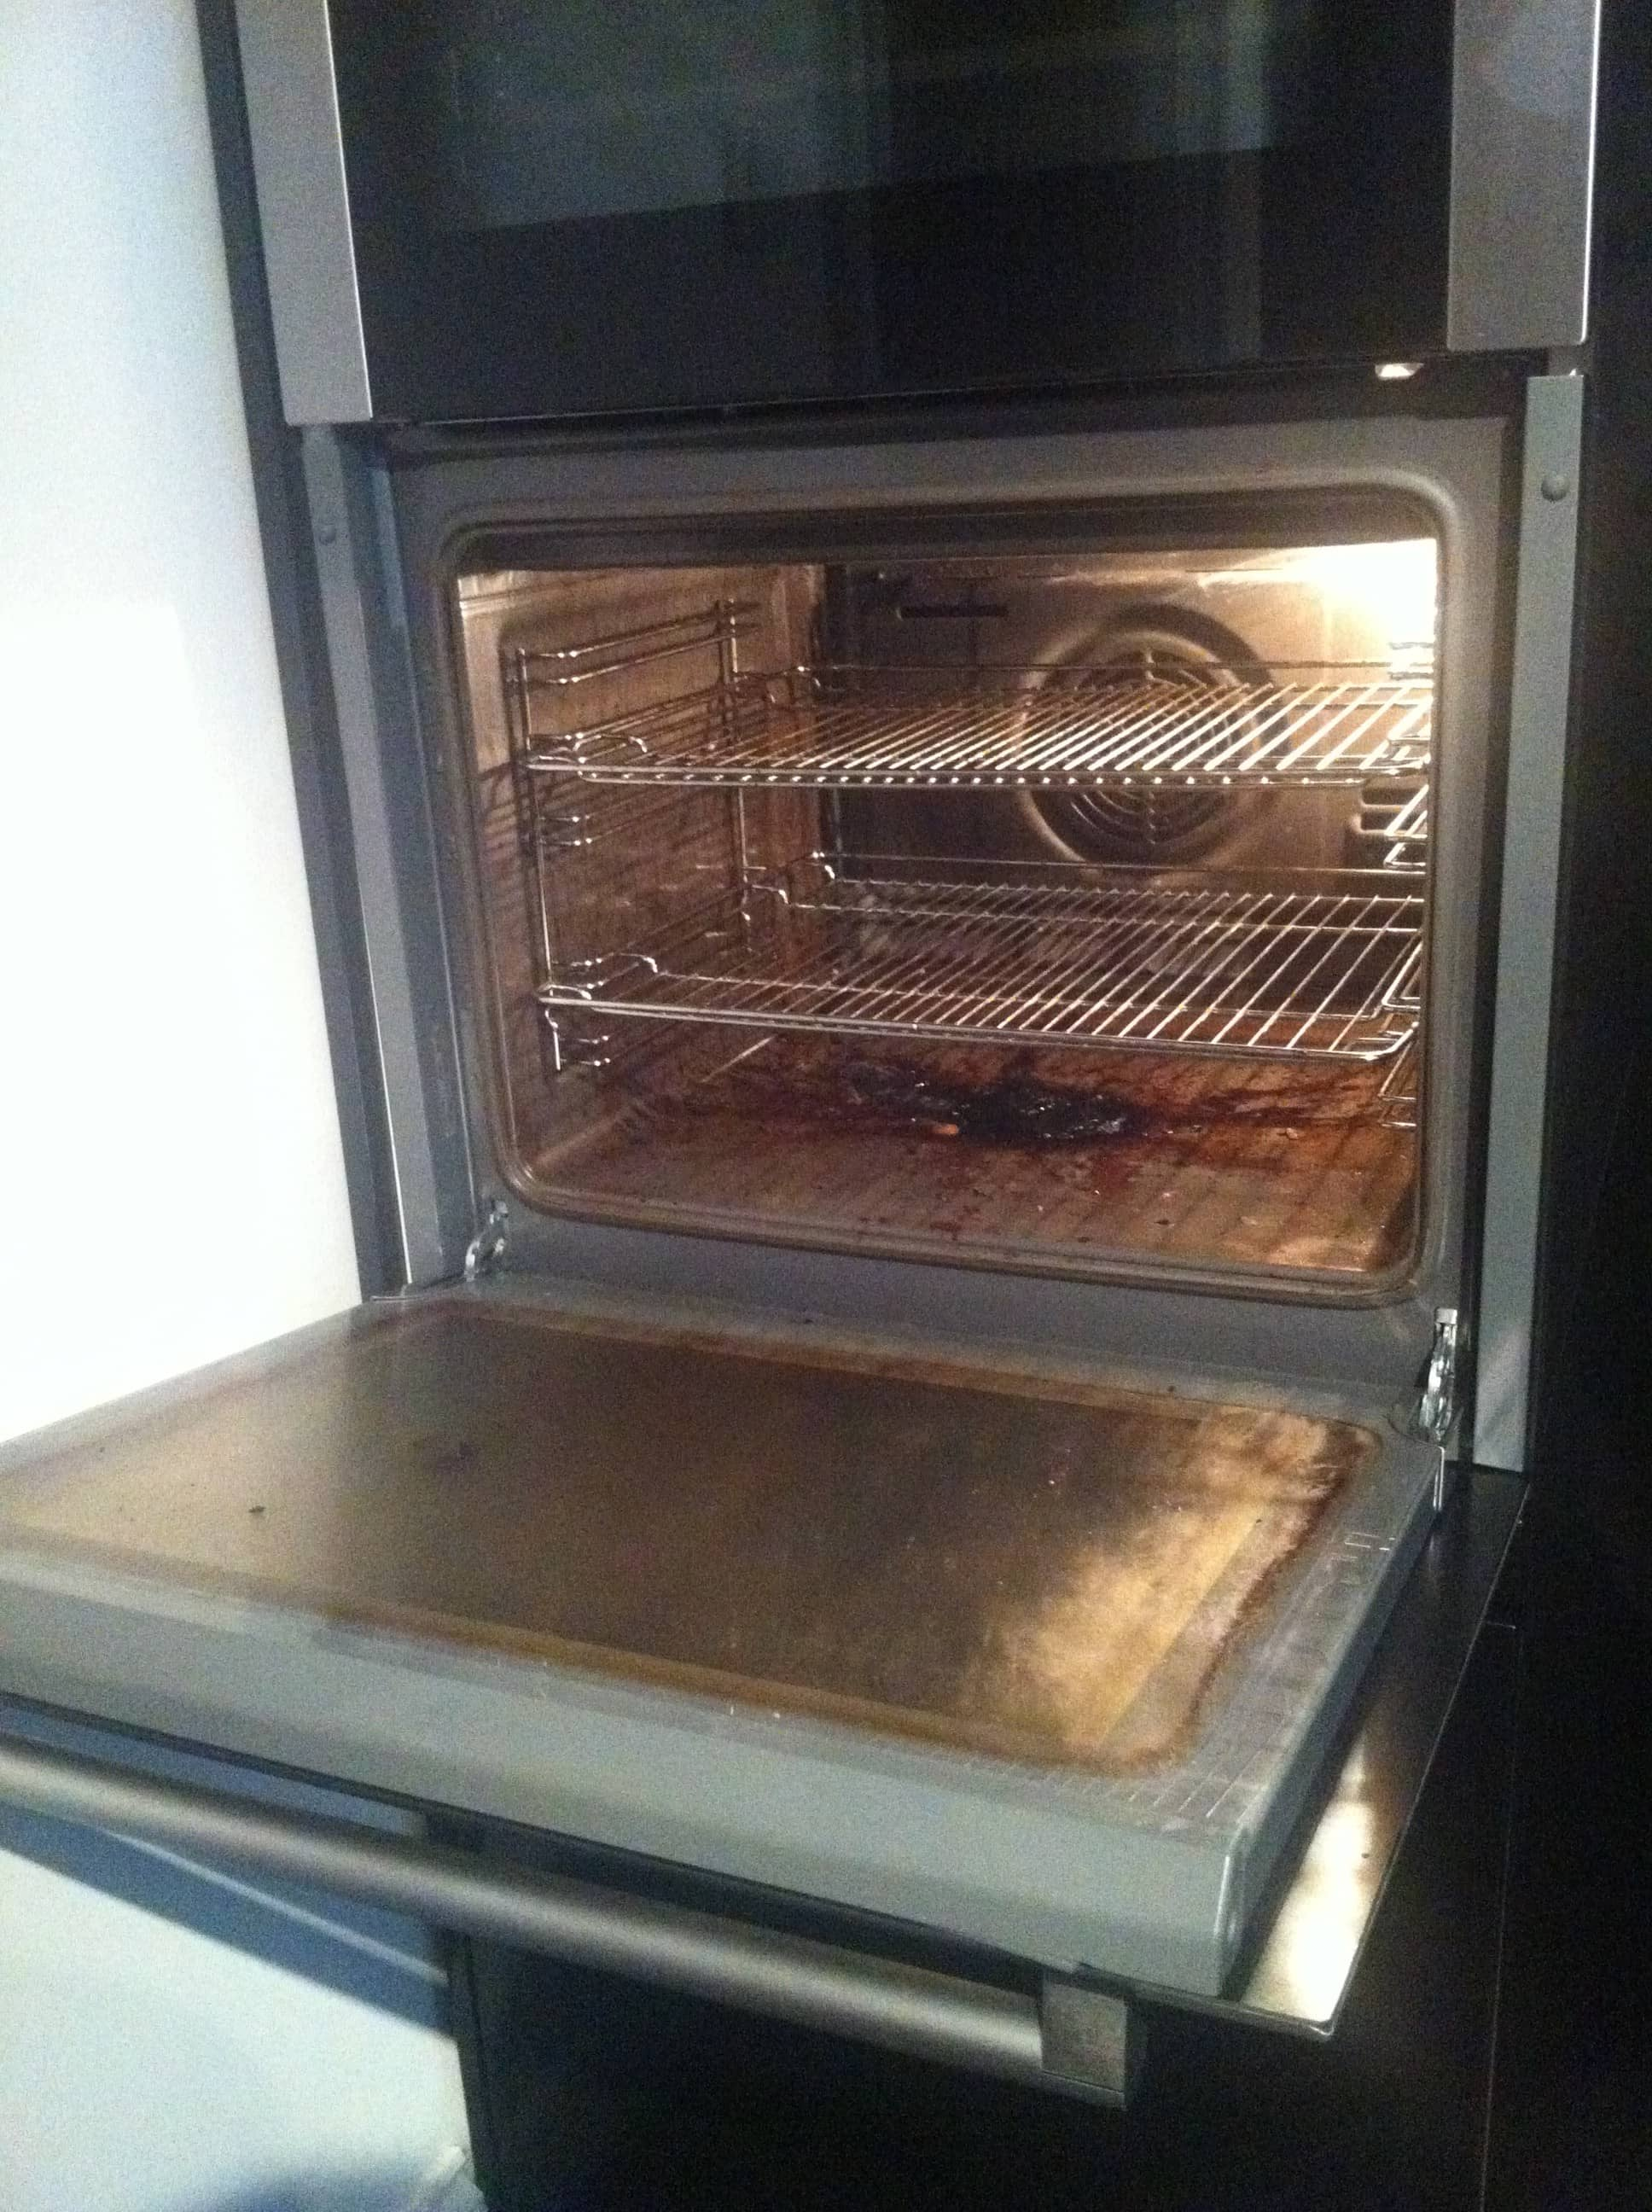 Srd Cleaning Services The Number 1 Place For Oven Cleaning